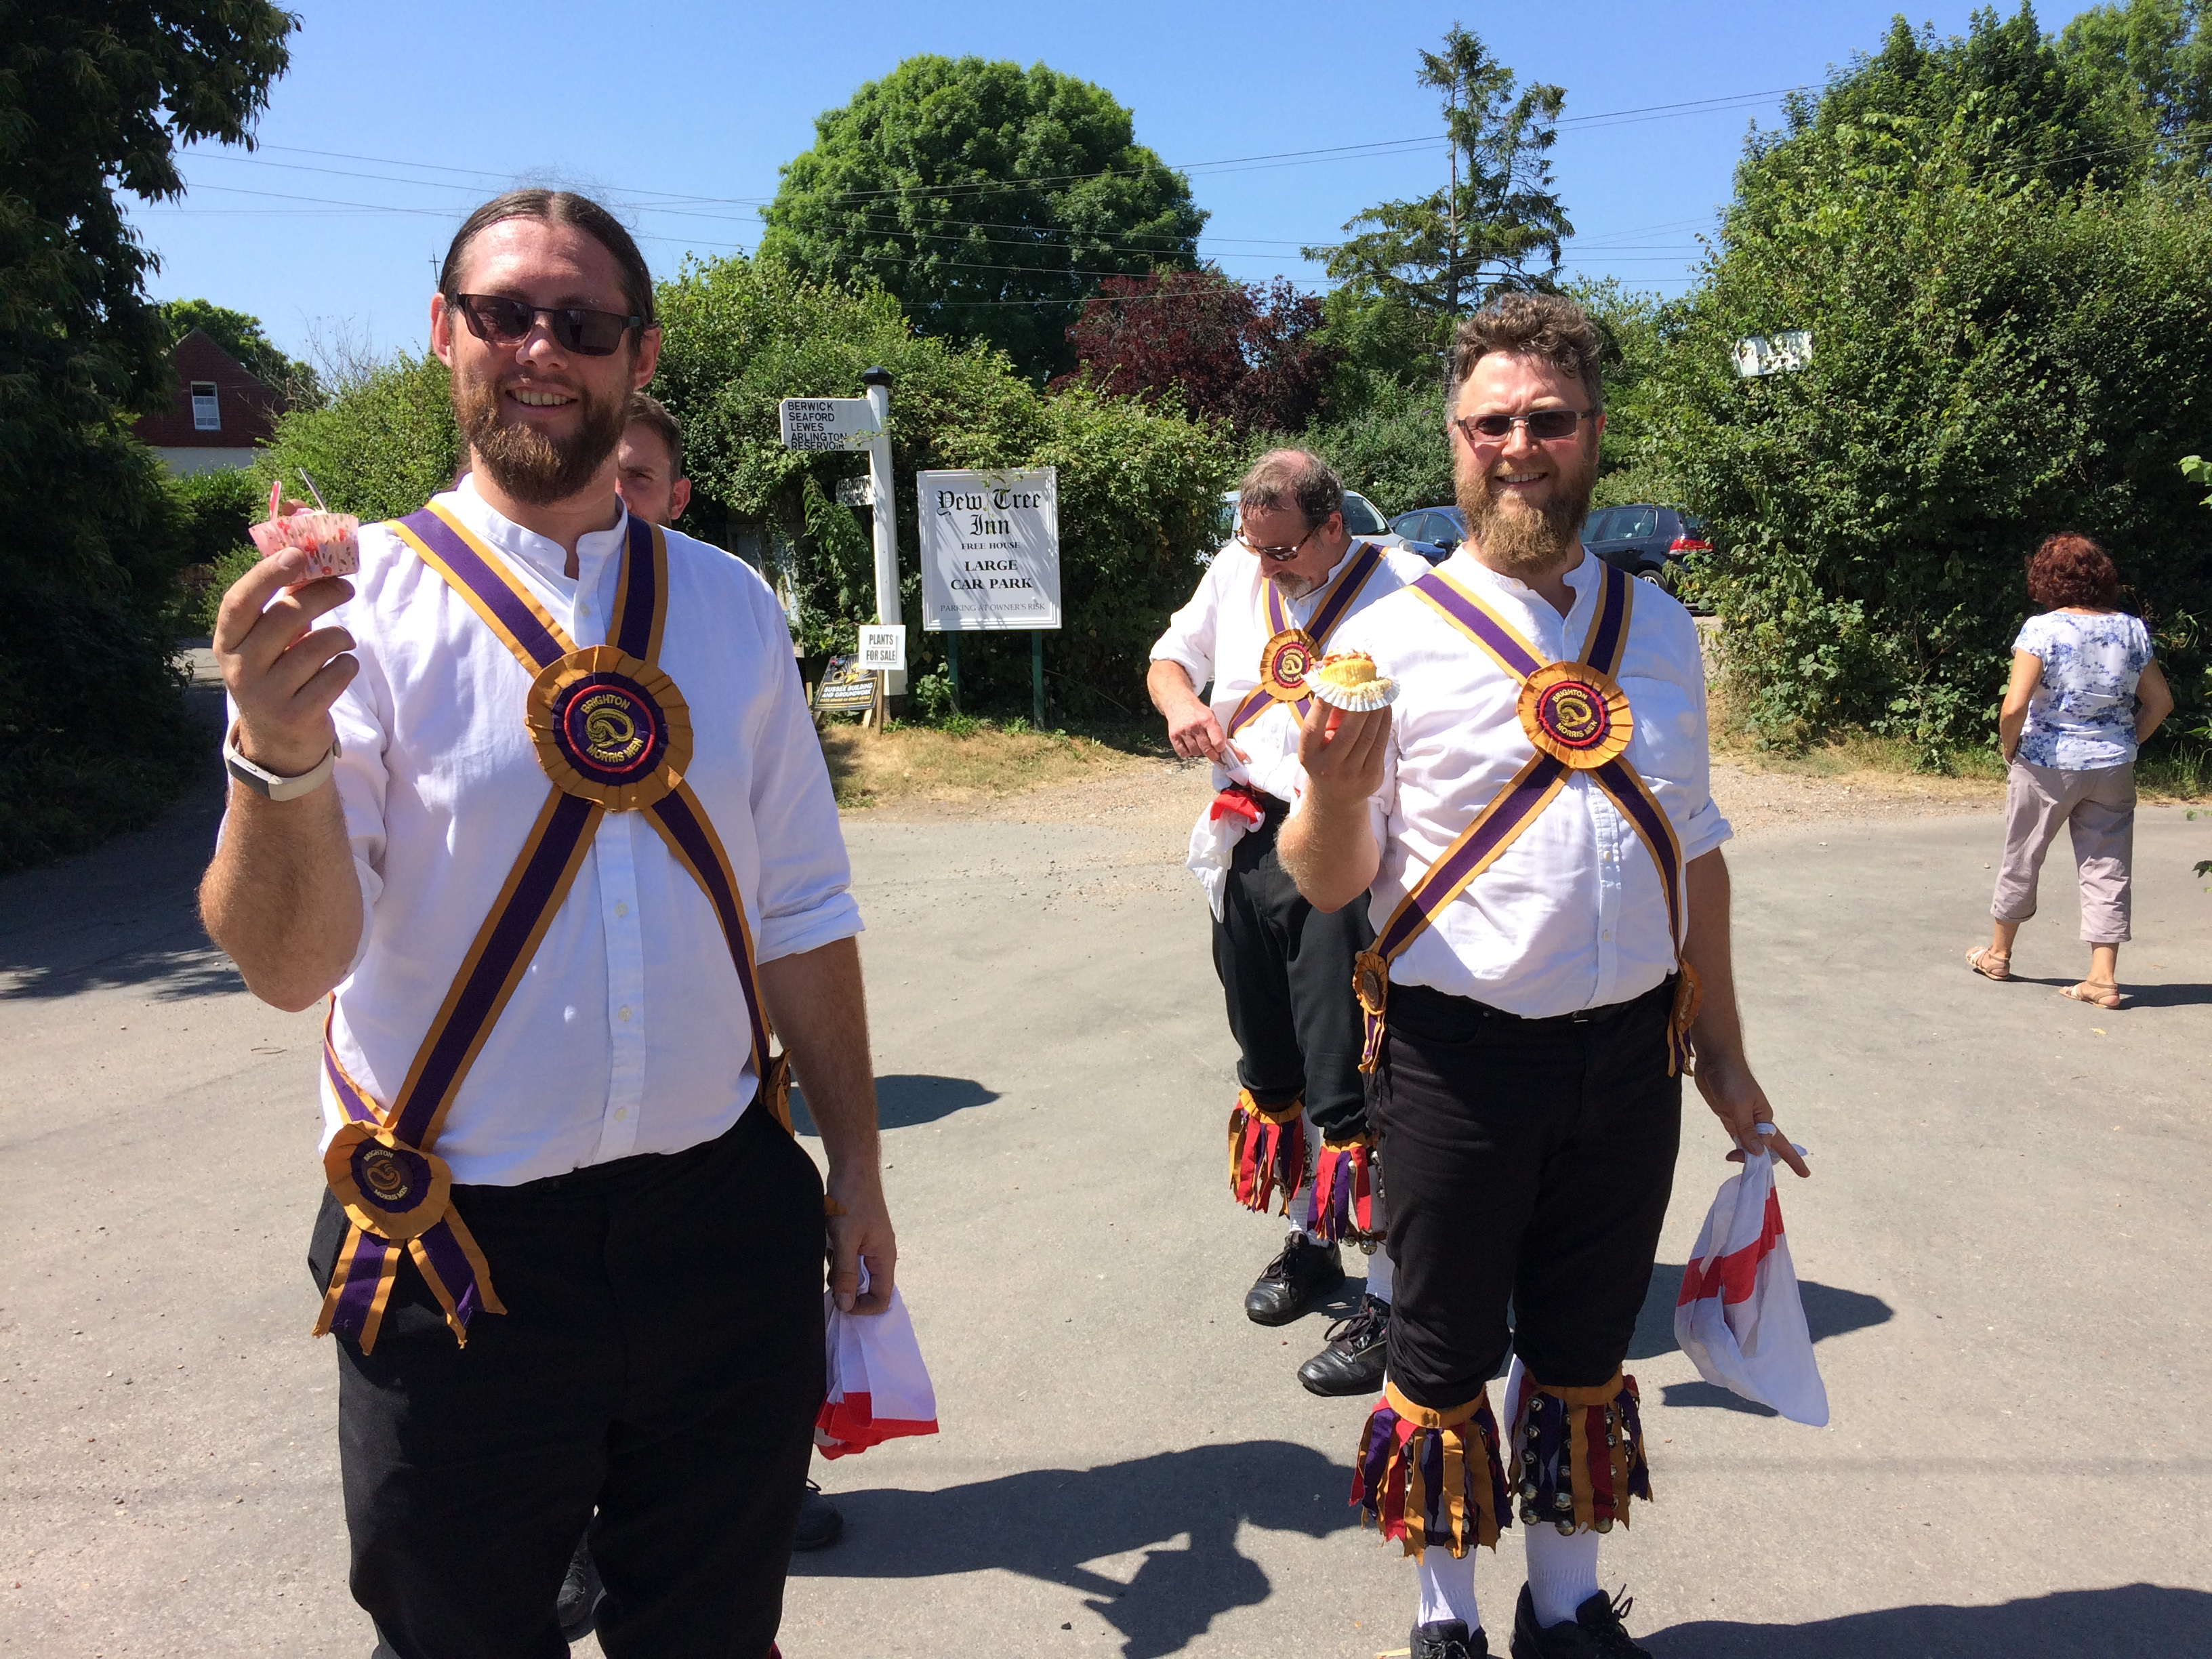 Morris dancing with cup cakes